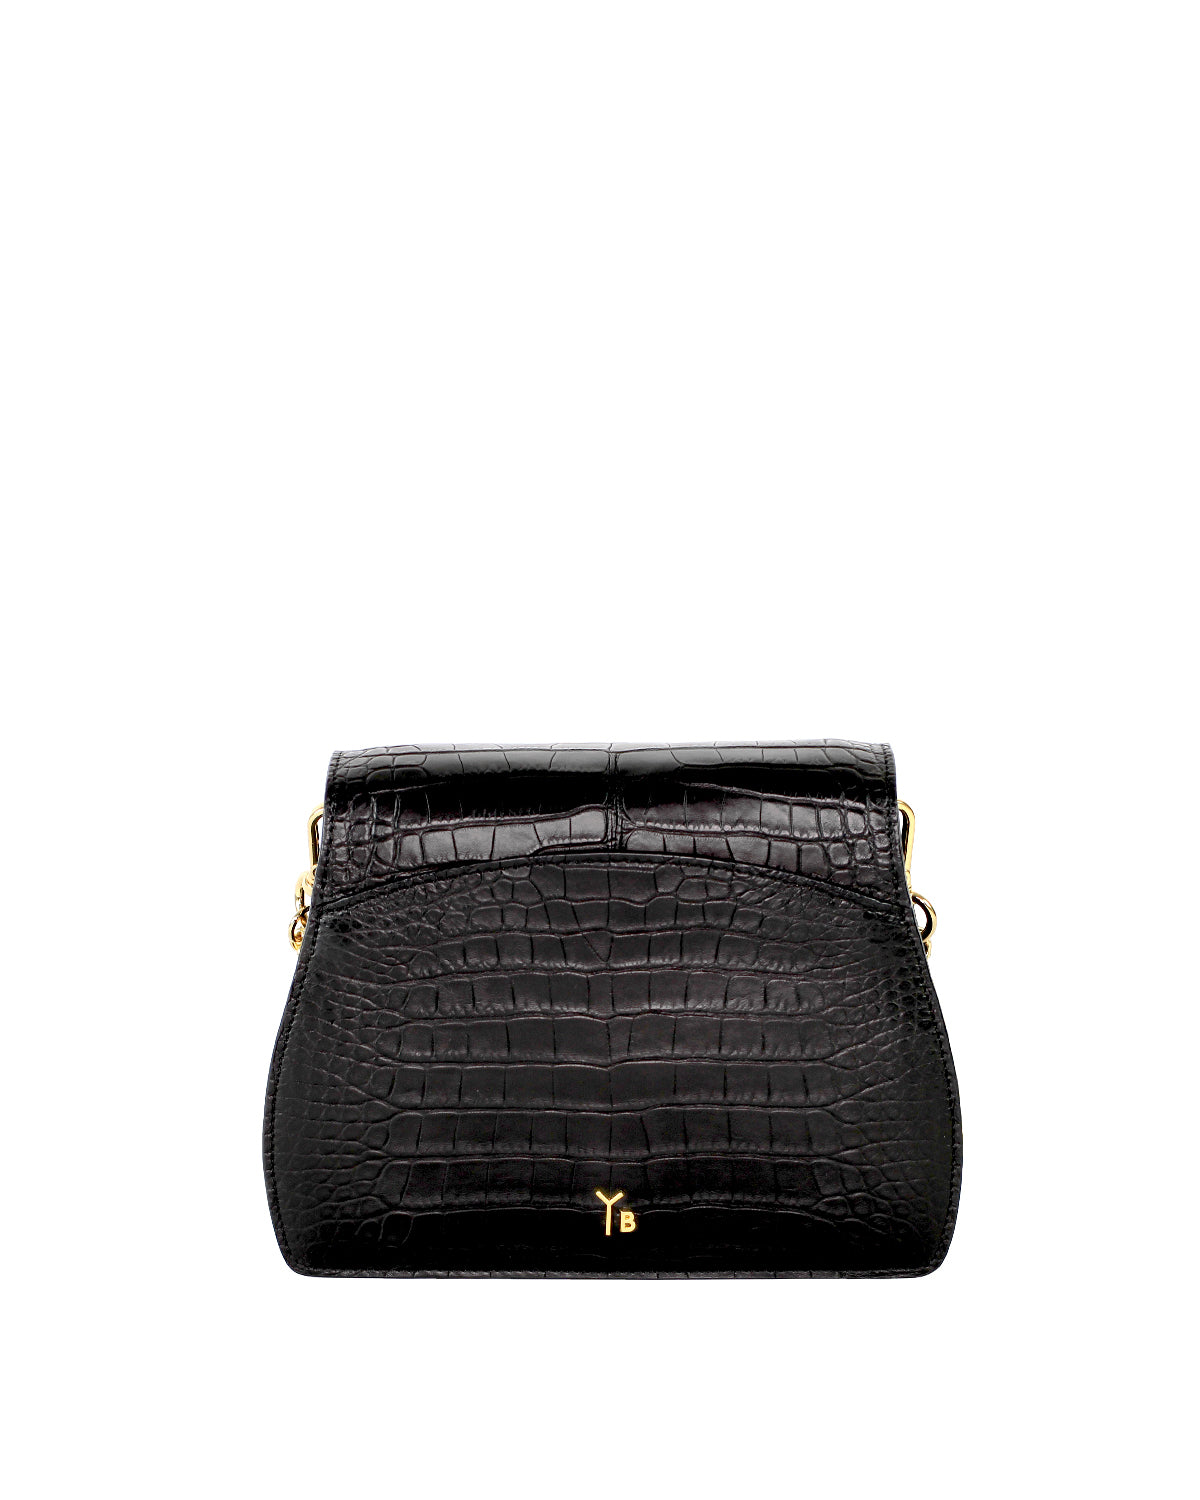 YB Black Alligator Benny Shoulder Handbag Yara Bashoor Yellow Gold Back View